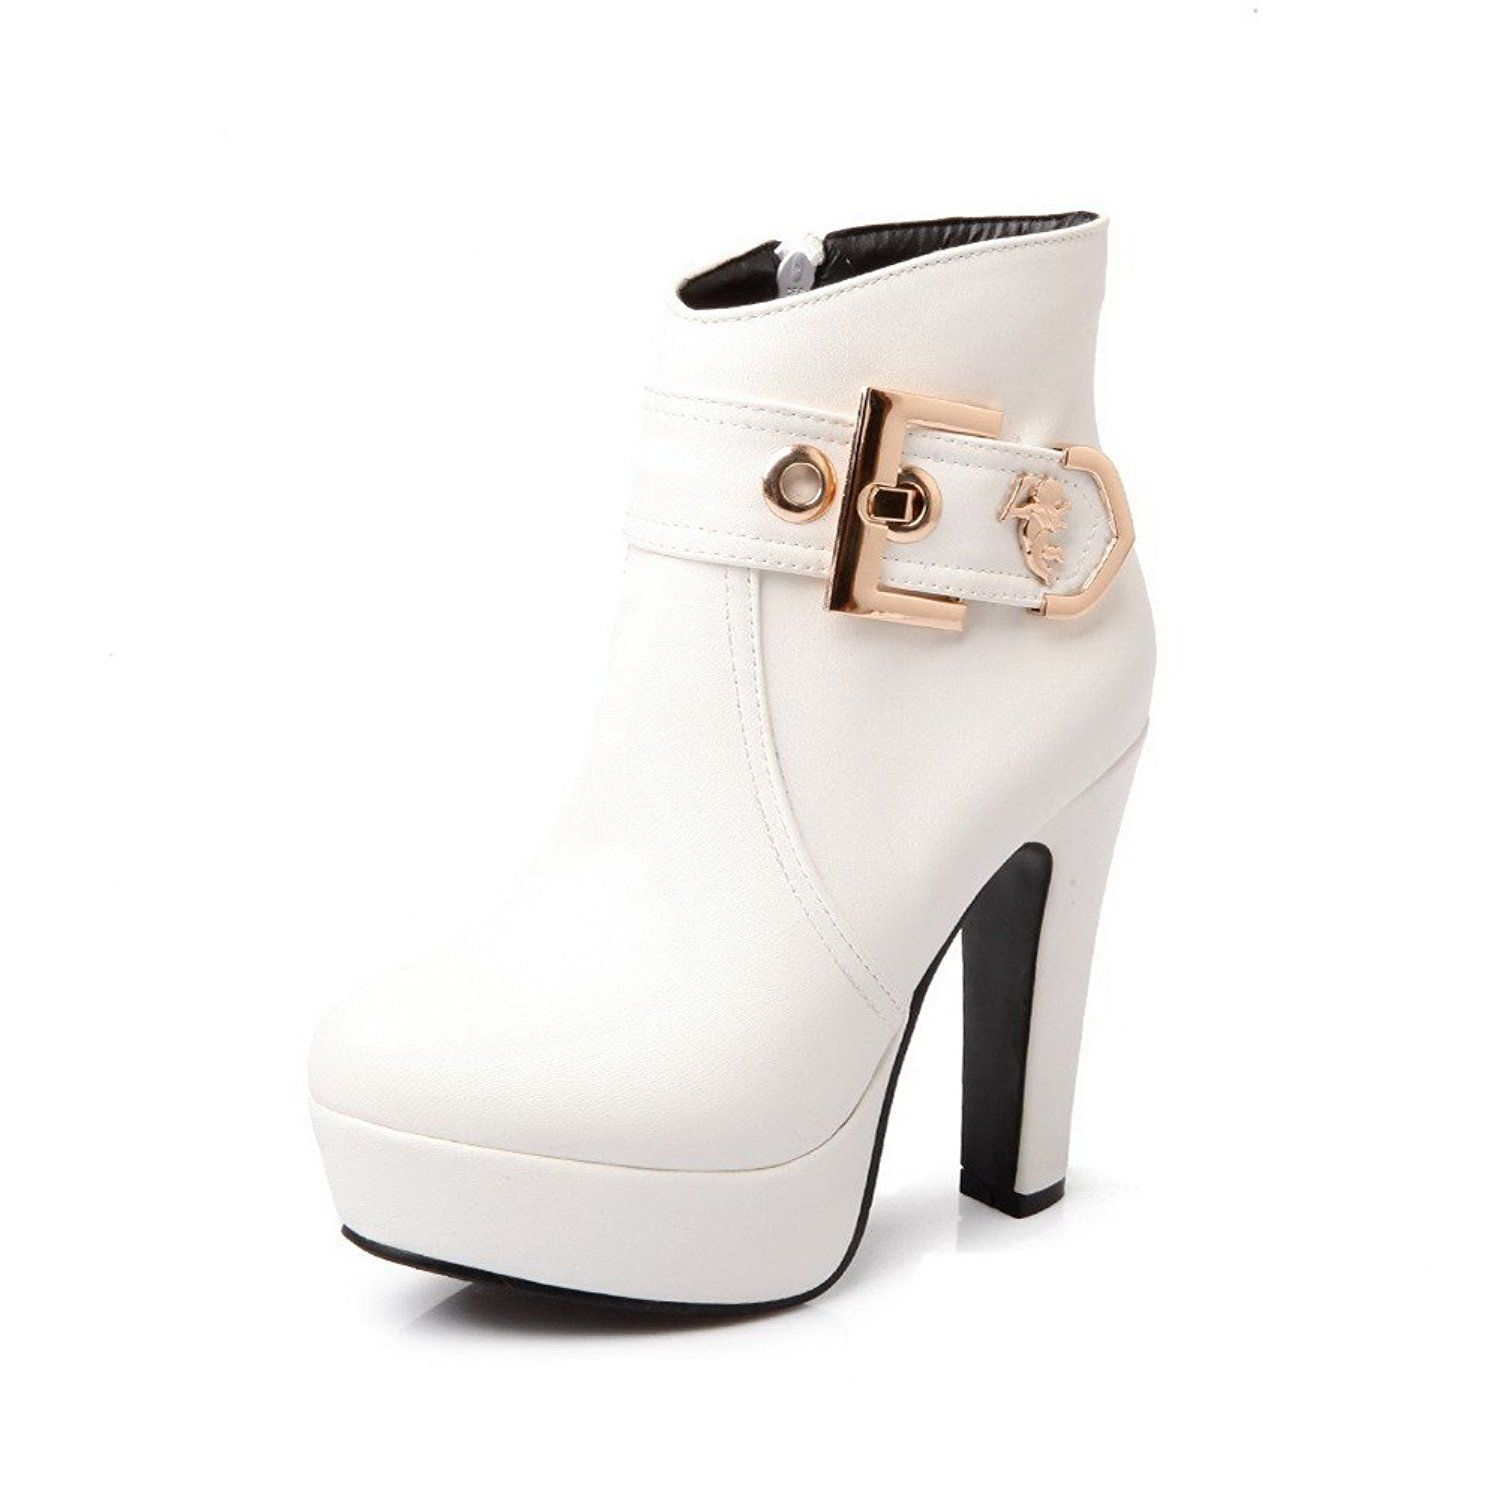 VogueZone009 Womens Closed Round Toe High Heel Soft Material PU Solid Boots with Metalornament